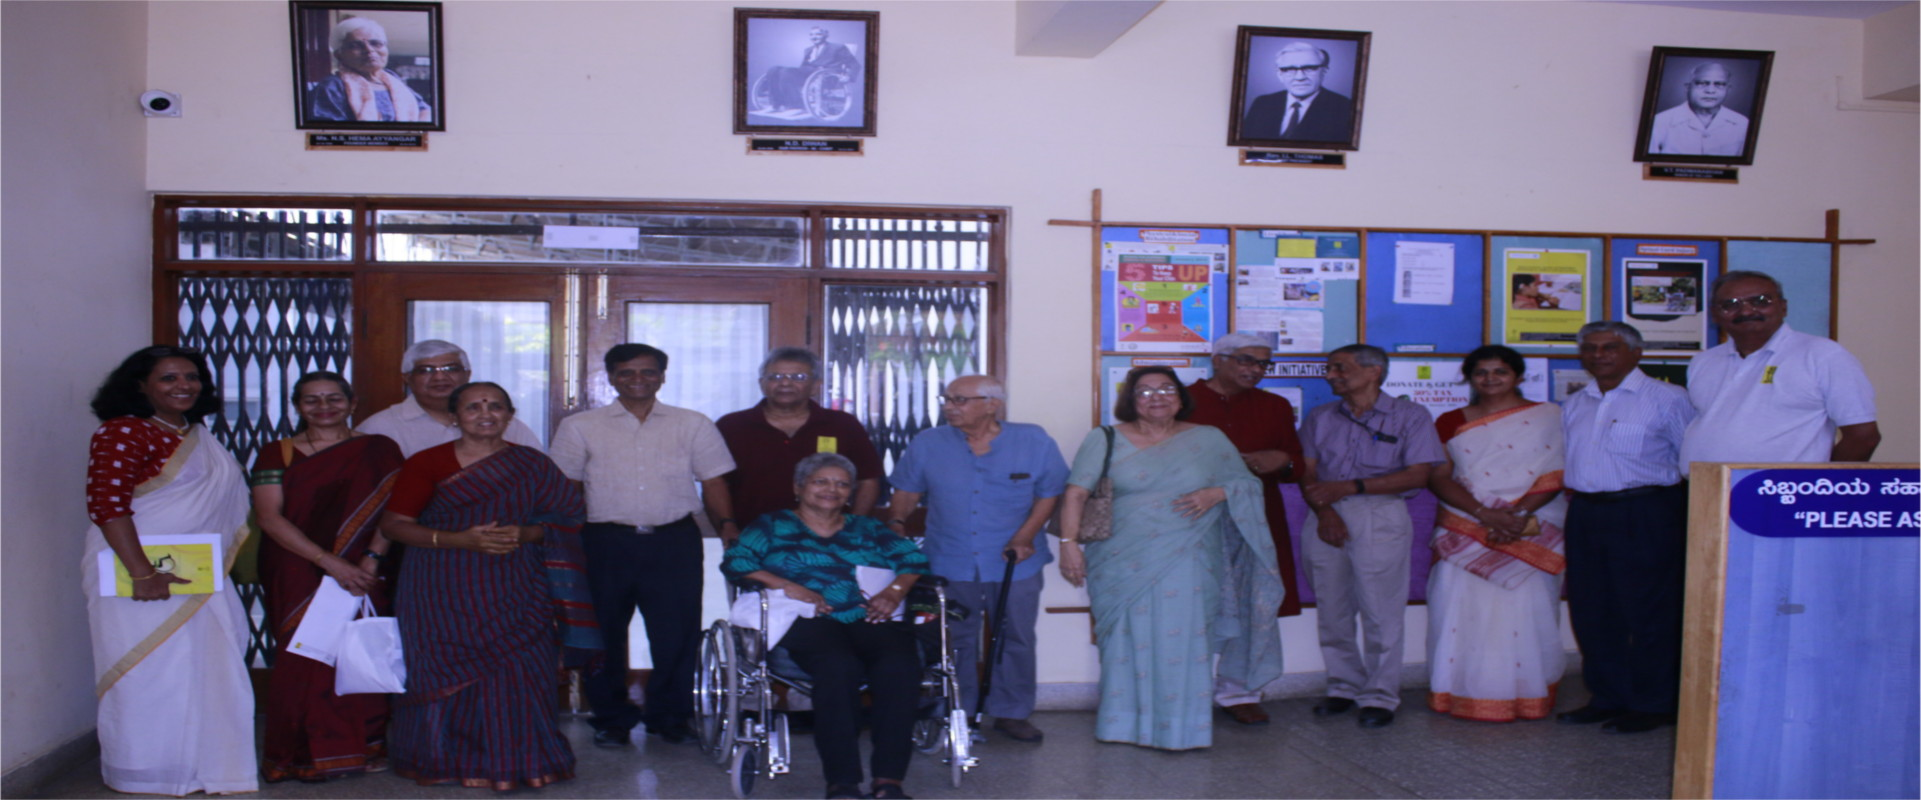 The Association of People with Disability | APD India | Since 1959